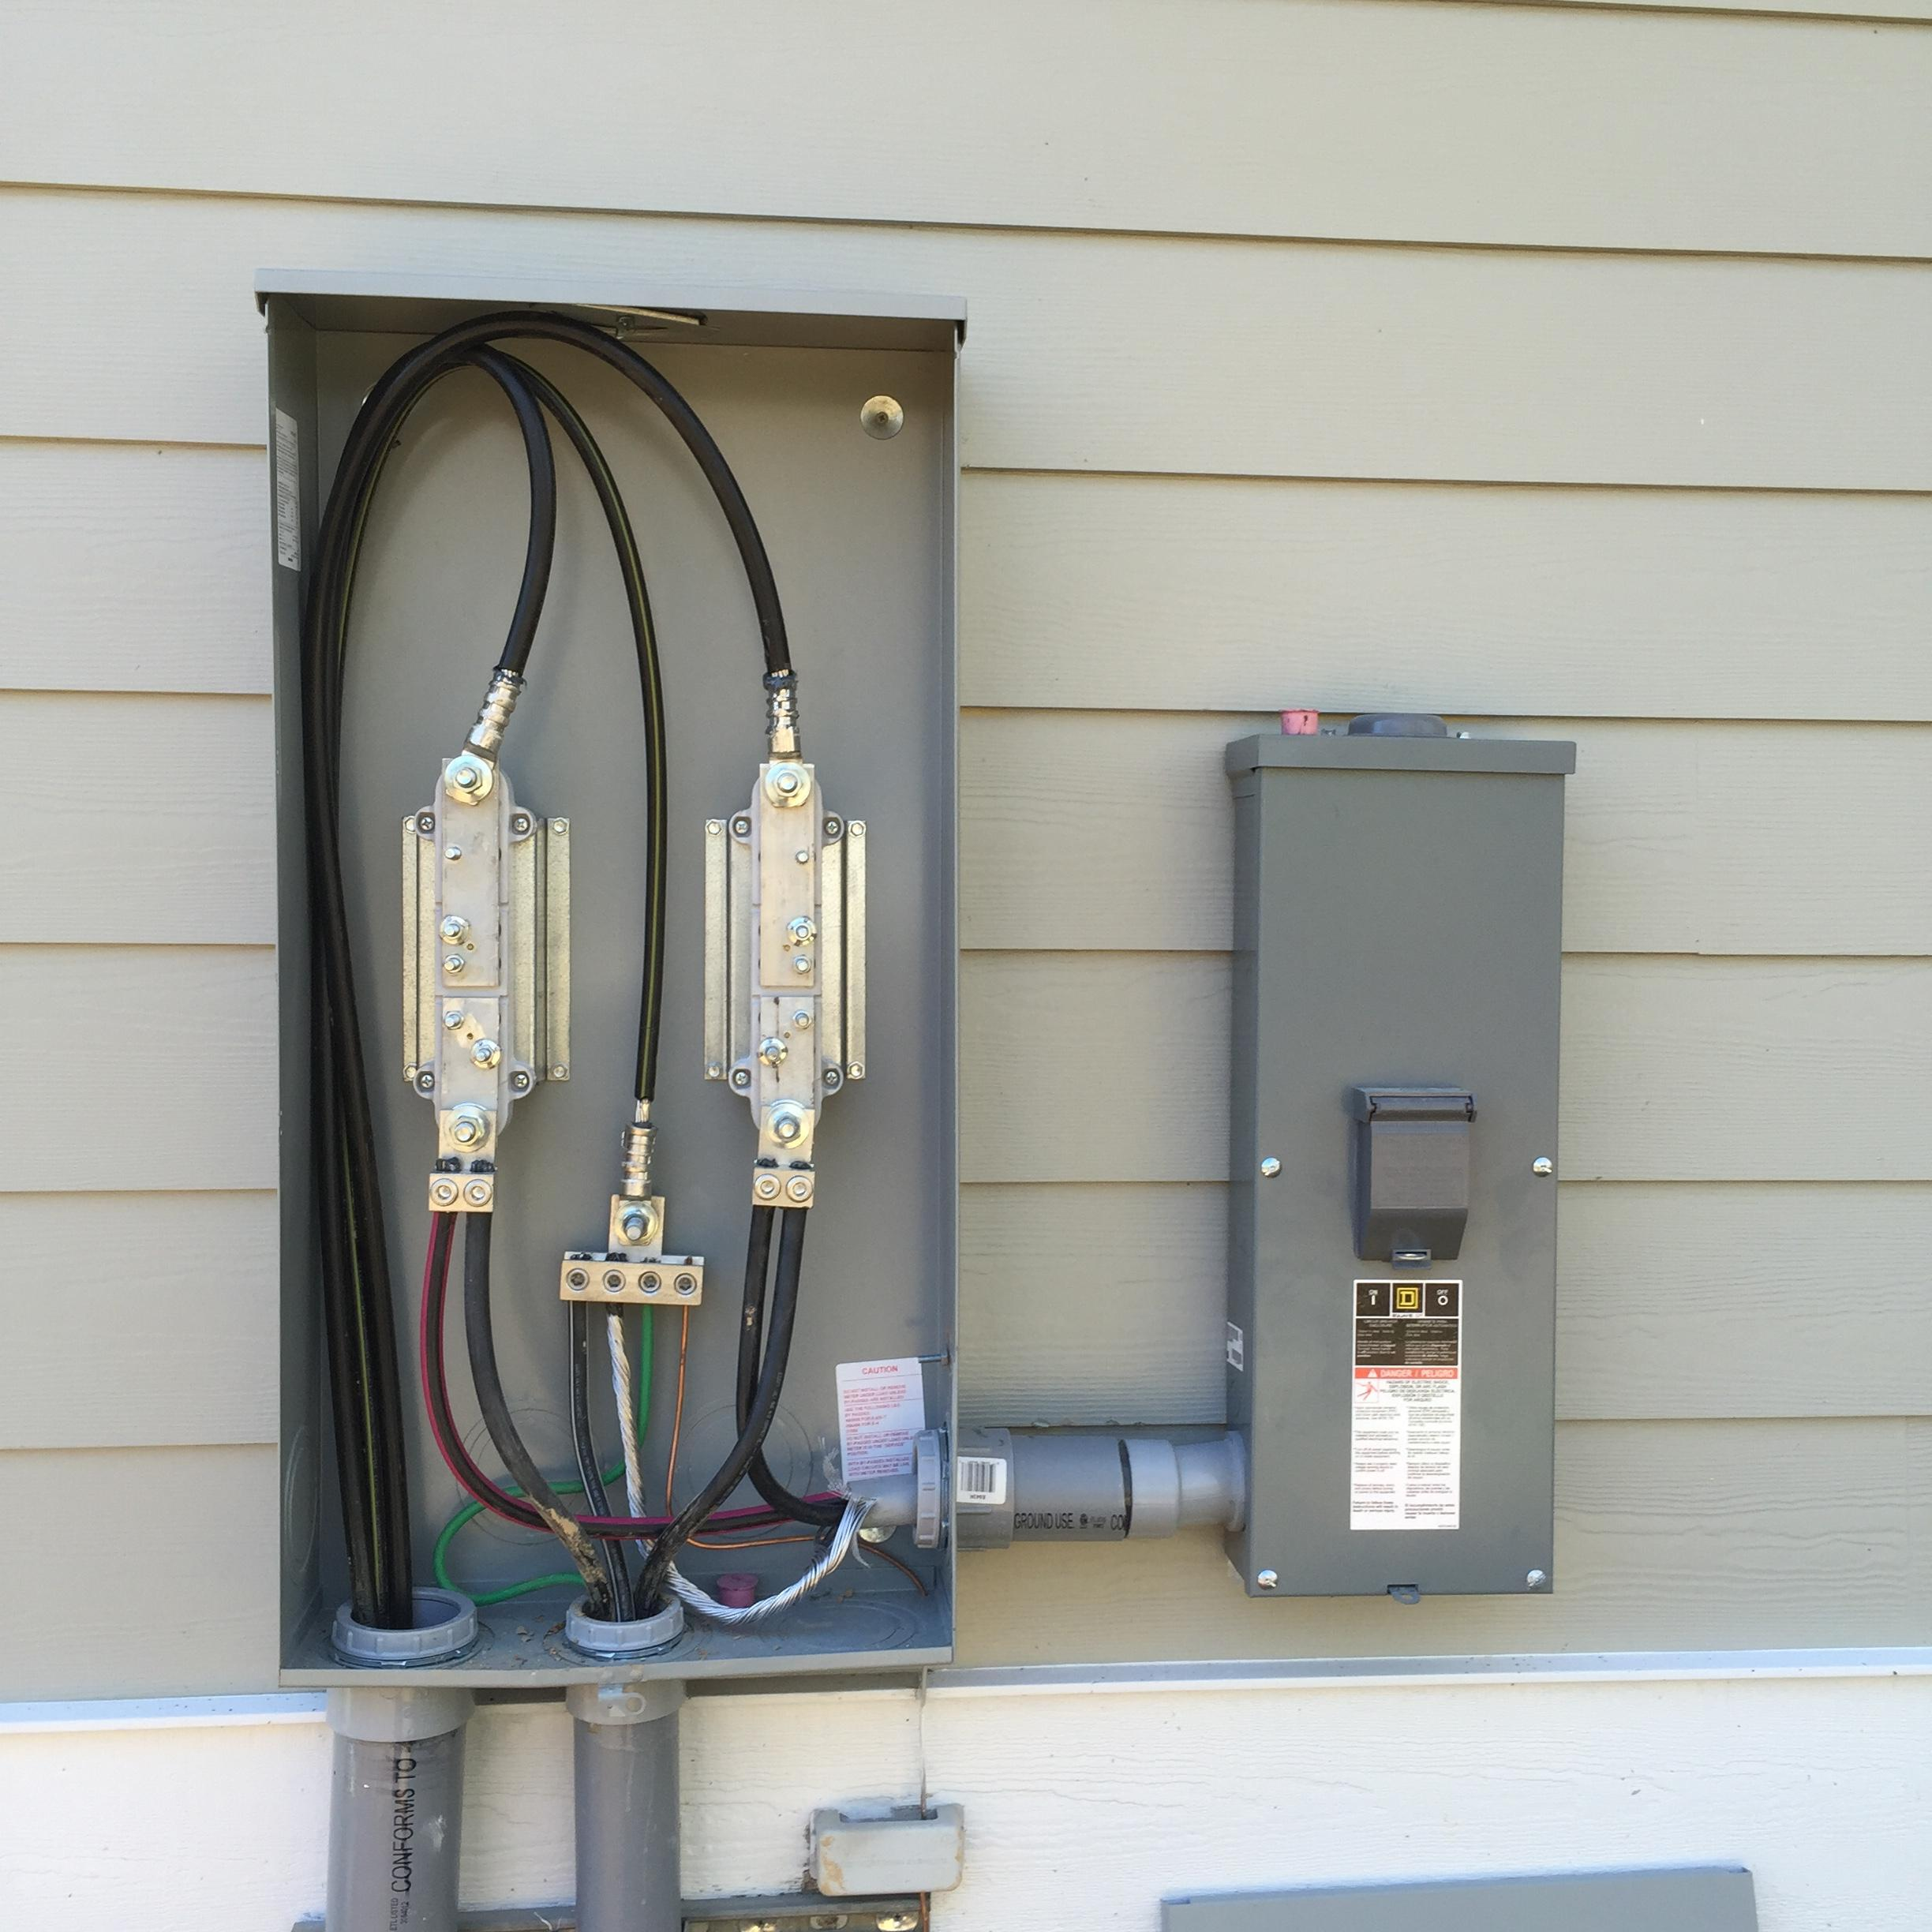 Wiring a 400 amp service wiring a 200 amp service meter to panel mr electric electrical contractors south carolina mr electric electrical contractors south carolina wiring a 100 amp service aluminum wire wiring a 400 greentooth Image collections